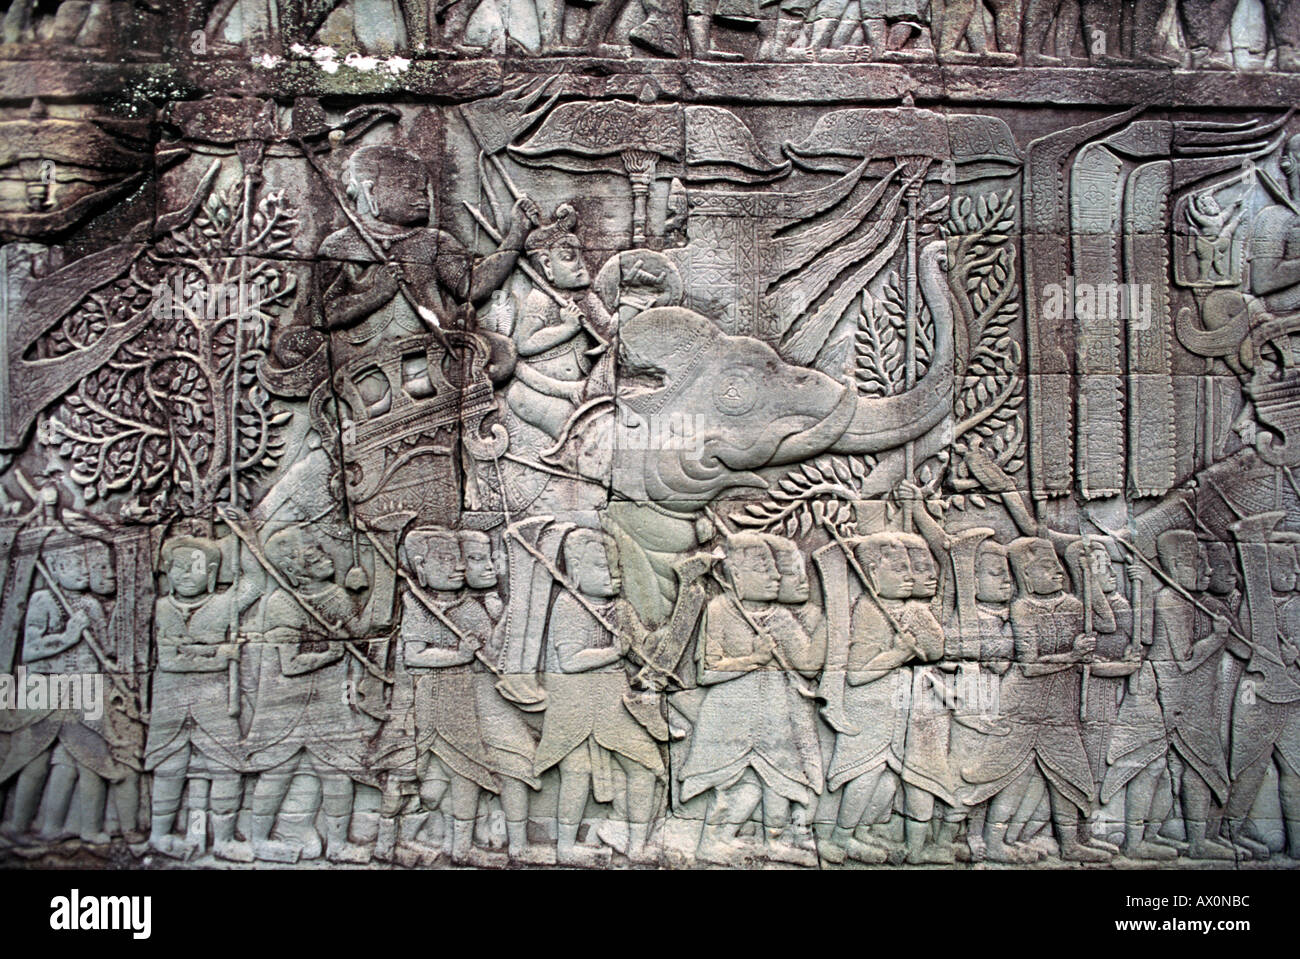 Bas relief with elephant carved onto the outer walls of